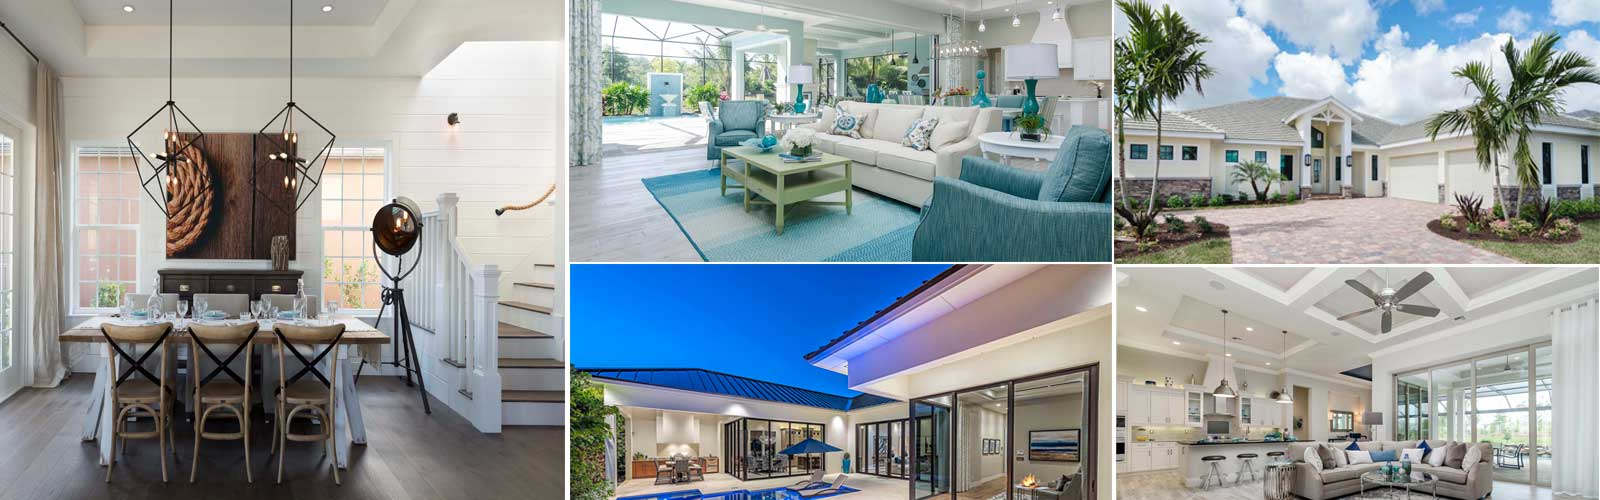 Can You Guess How Many Models at Naples Reserve Won Awards at the 2017 Parade of Homes? (Hint: Higher)